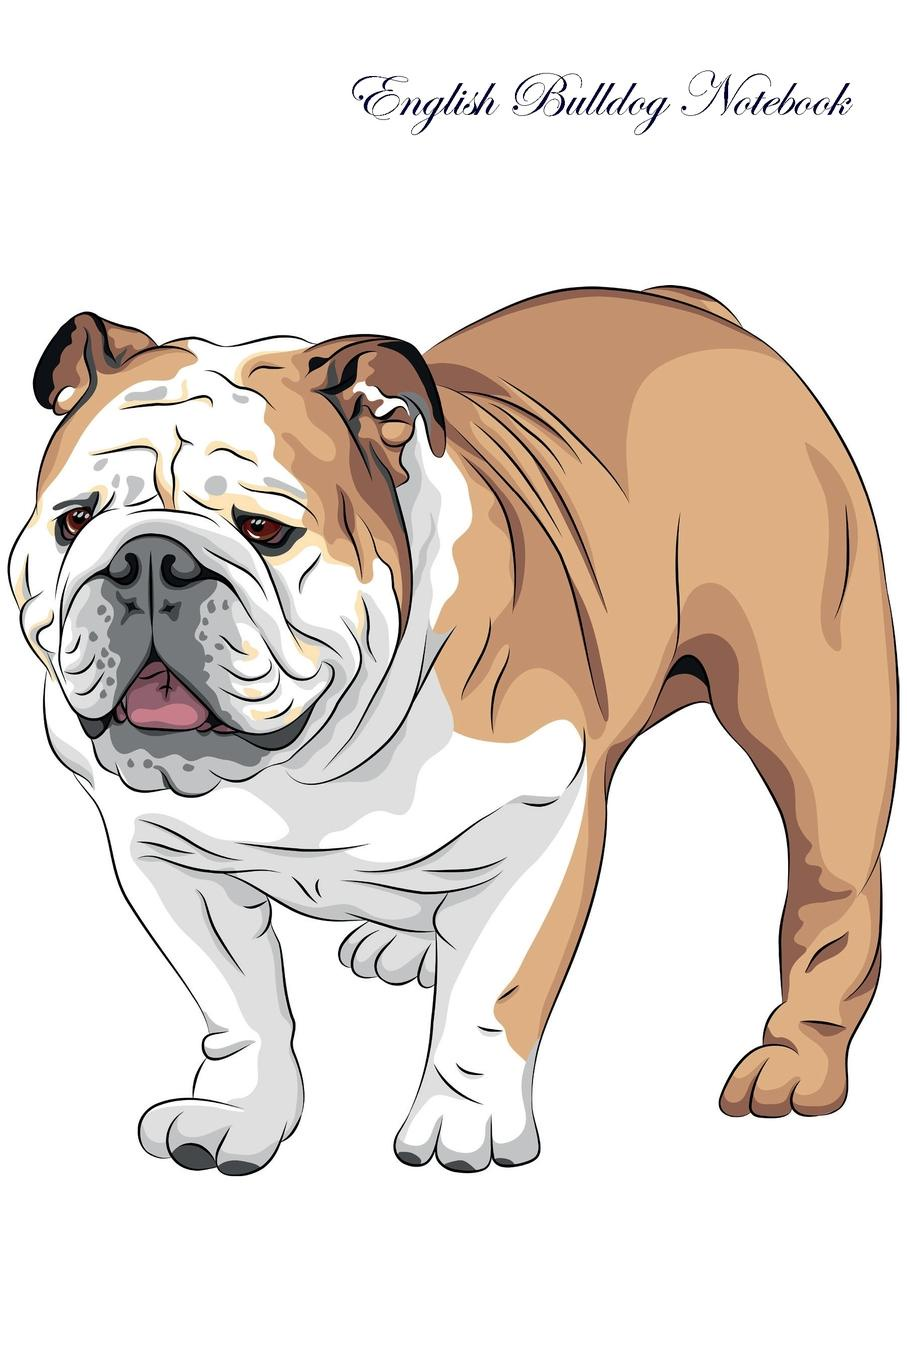 Pet Care Inc. English Bulldog Notebook Record Journal, Diary, Special Memories, To Do List, Academic Notepad, and Much More pet care inc pembroke welsh corgi notebook record journal diary special memories to do list academic notepad and much more